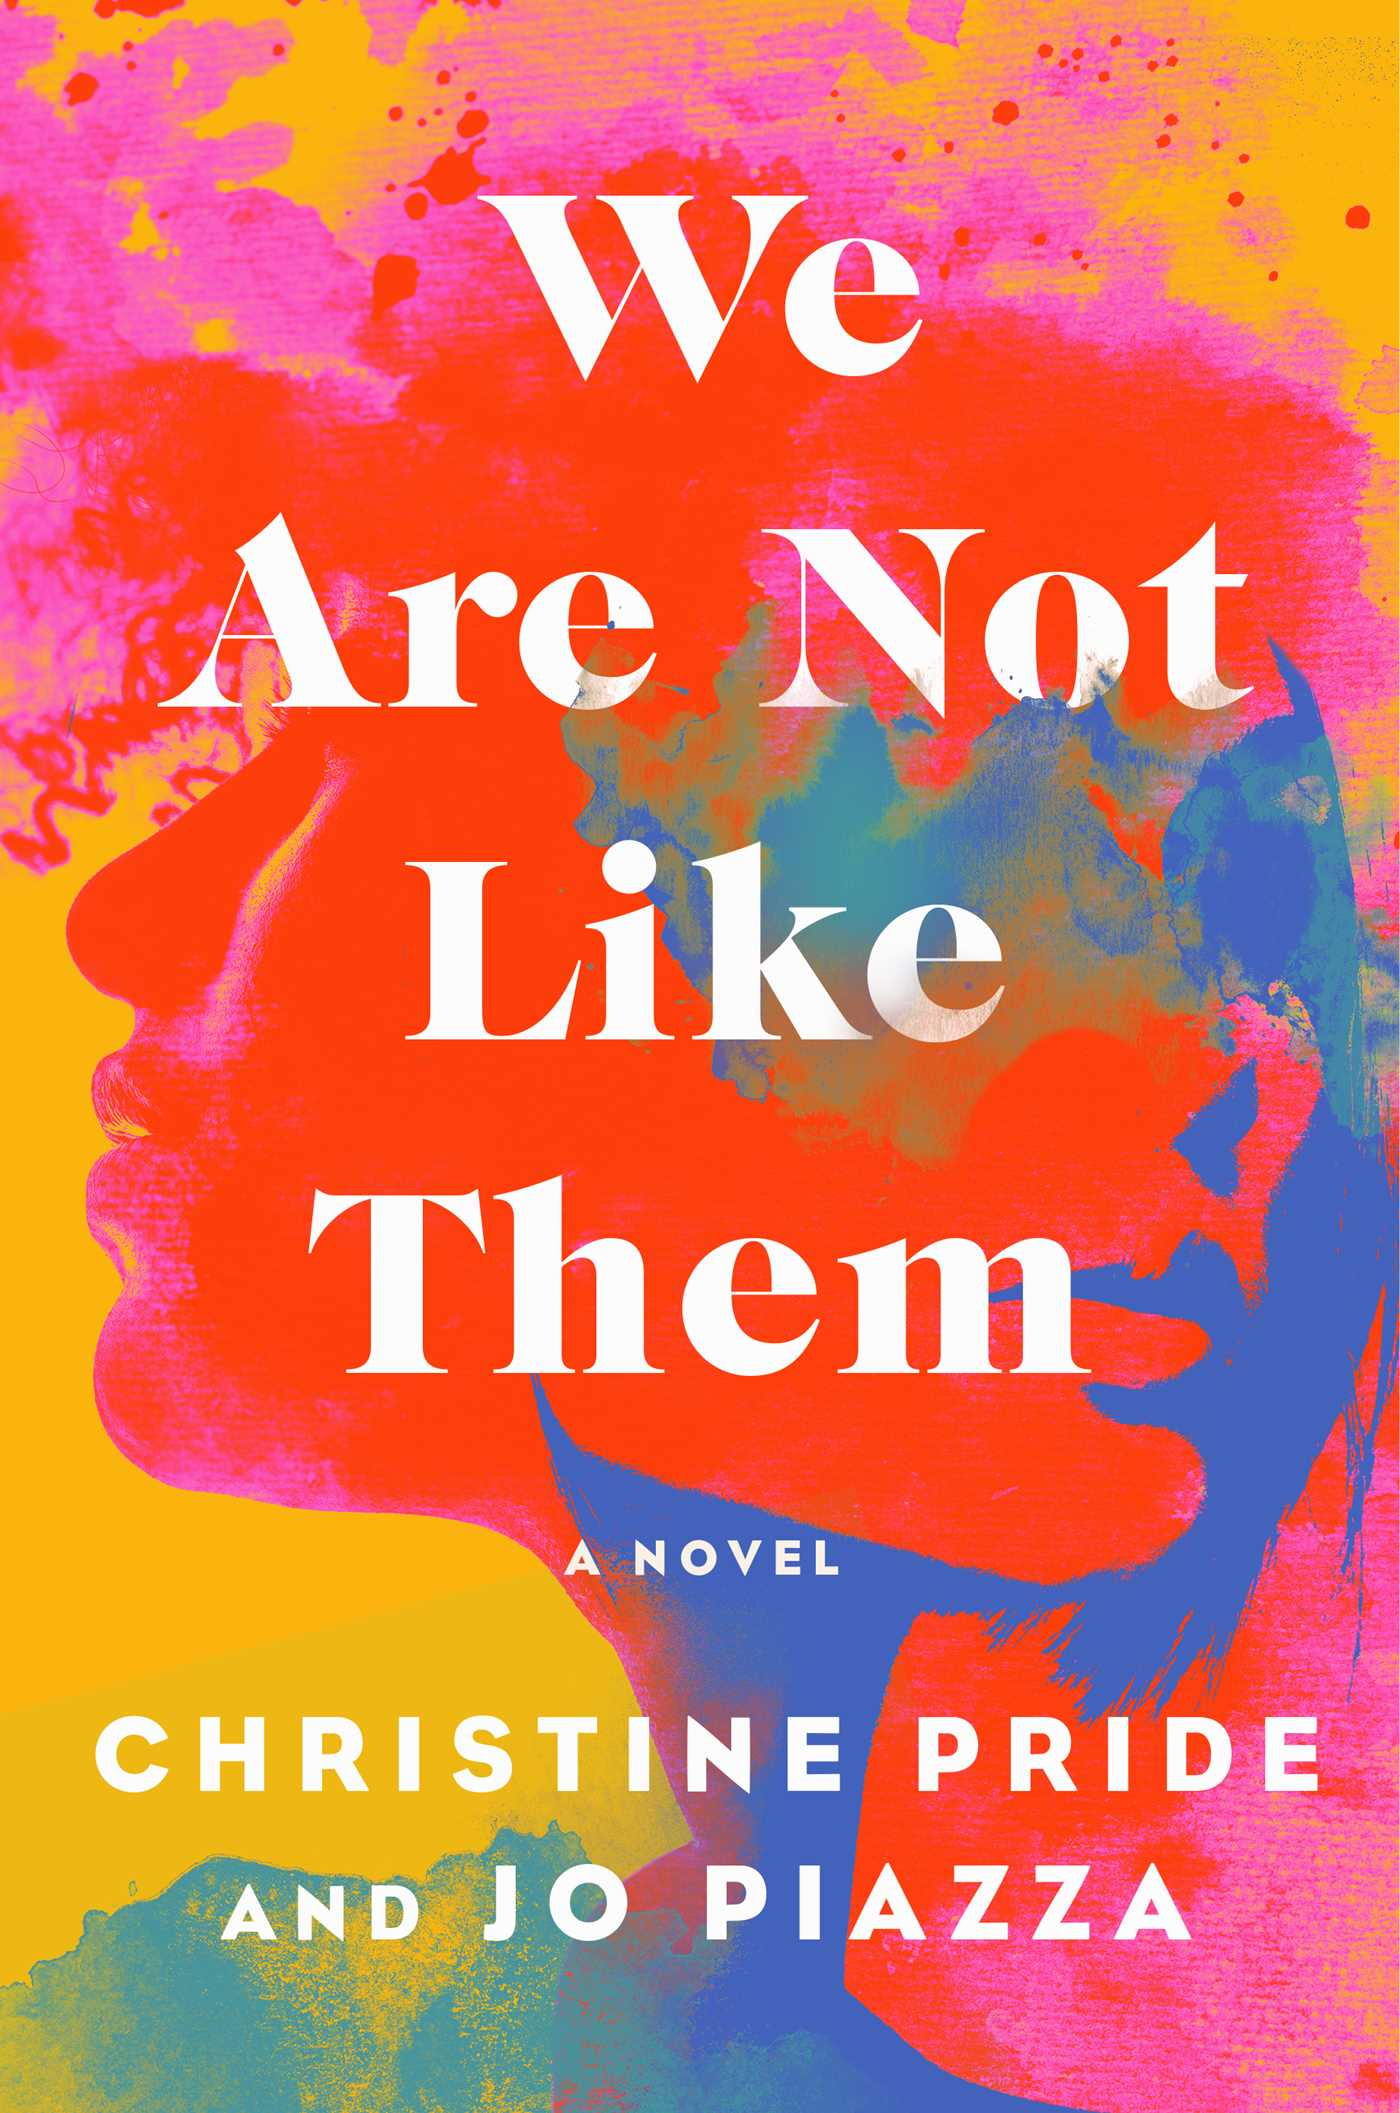 We Are Not Like Them by Christine Pride and Jo Piazza